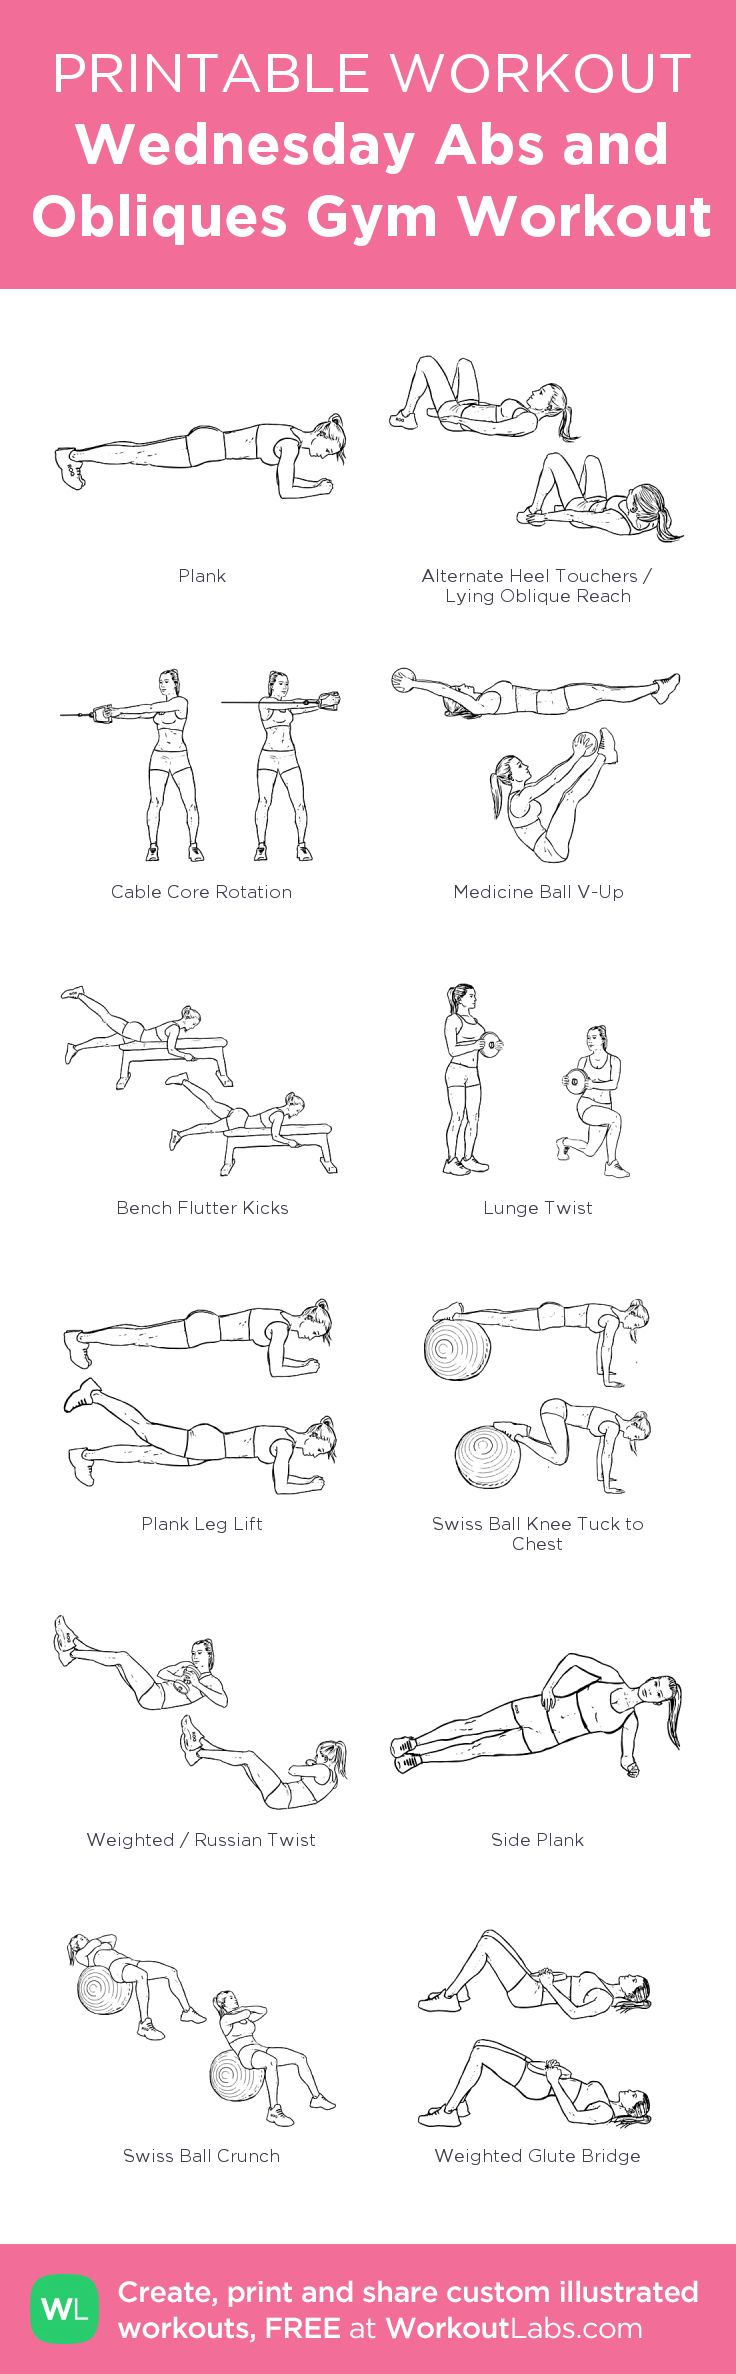 Wednesday Abs and Obliques Gym Workout: my visual workout created at WorkoutLabs.com • Click through to customize and download as a FREE PDF! #customworkout